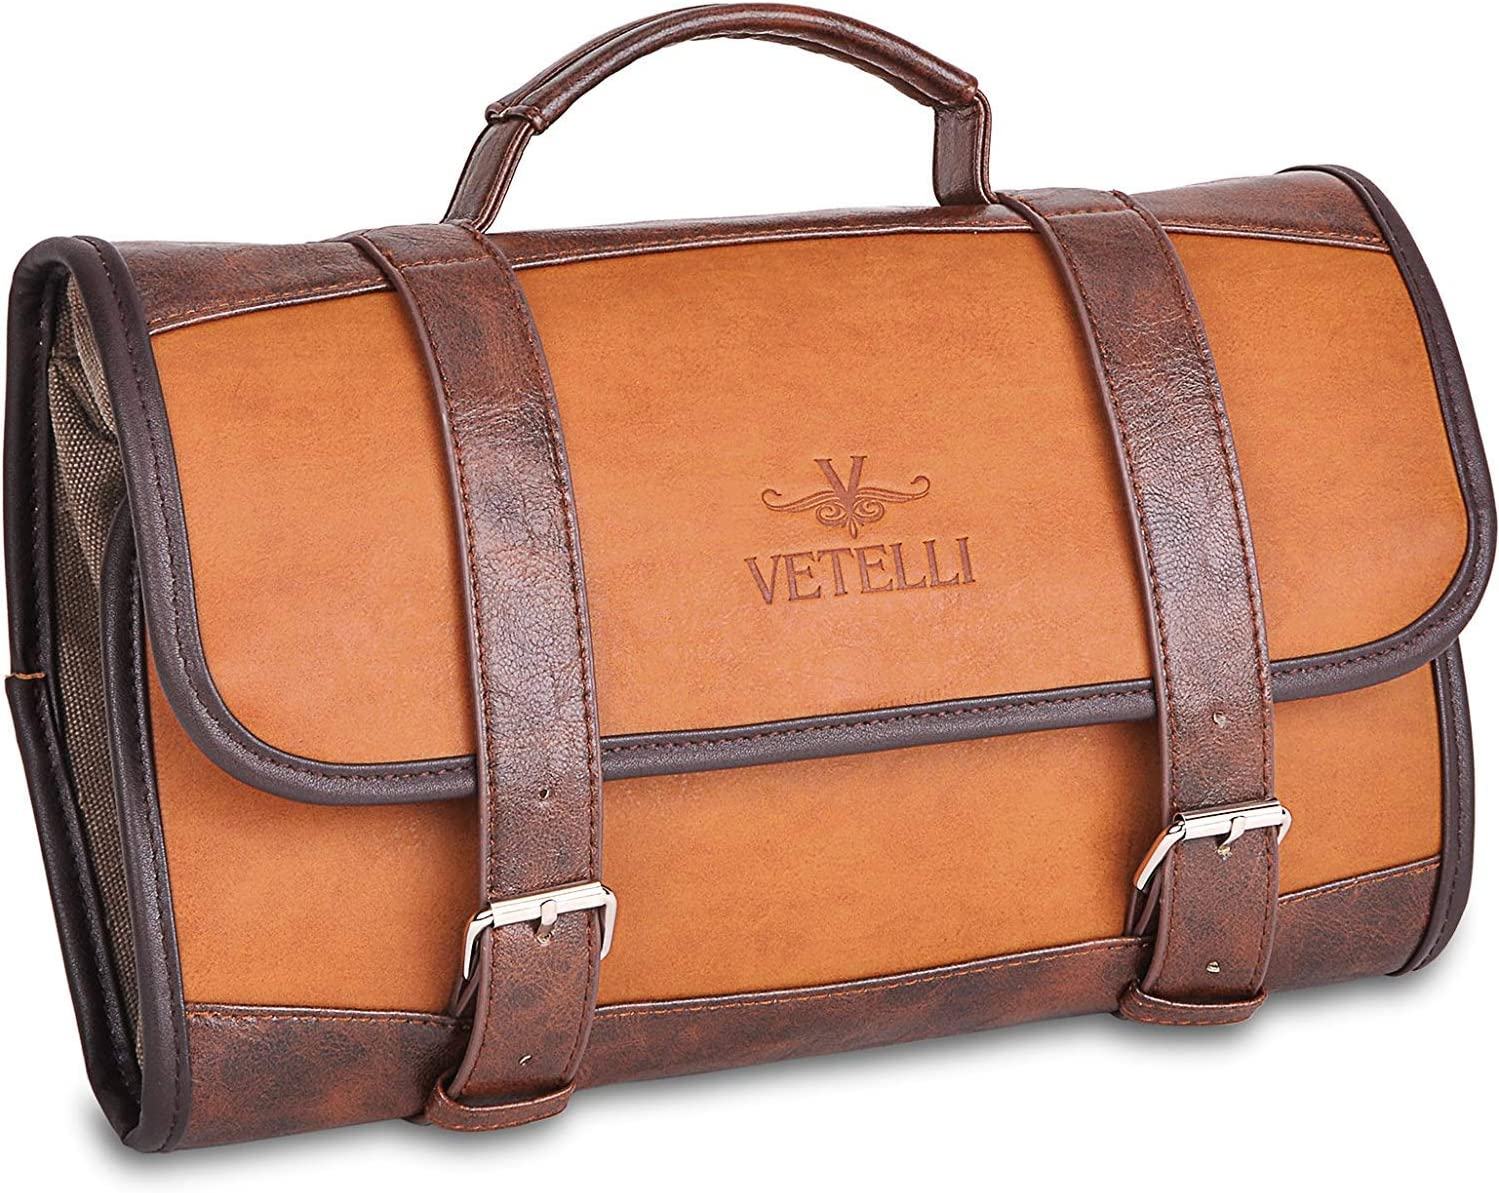 Vetelli Hanging Toiletry Bag for Men - Dopp Kit Travel Accessories Bag Great Gift